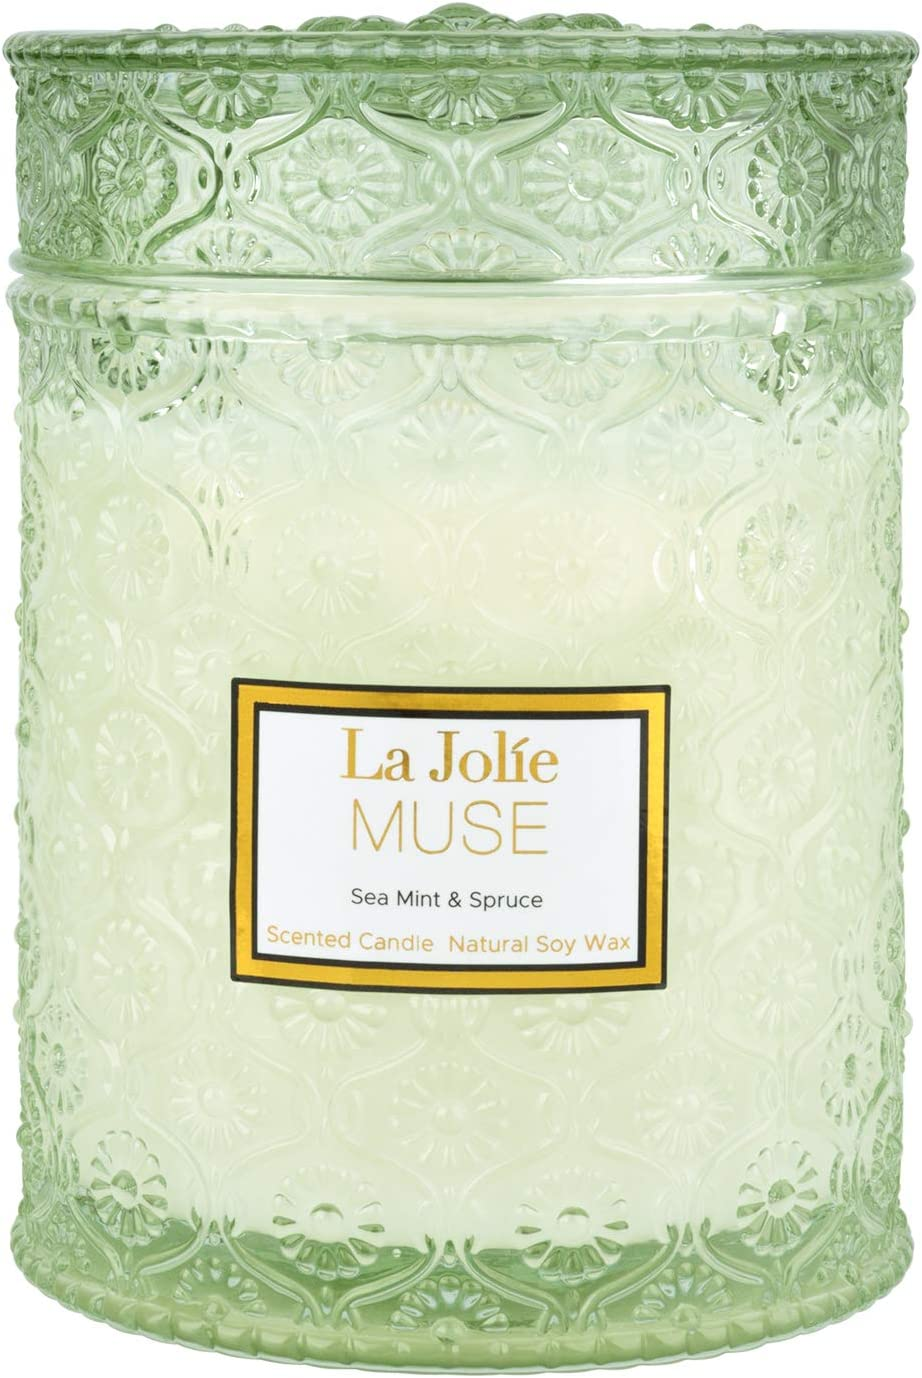 LA JOLIE MUSE Sea Mint & Spruce Scented Candle, Large Jar Candle Gift, Organic Candles, Wood Wick, 19.4 oz